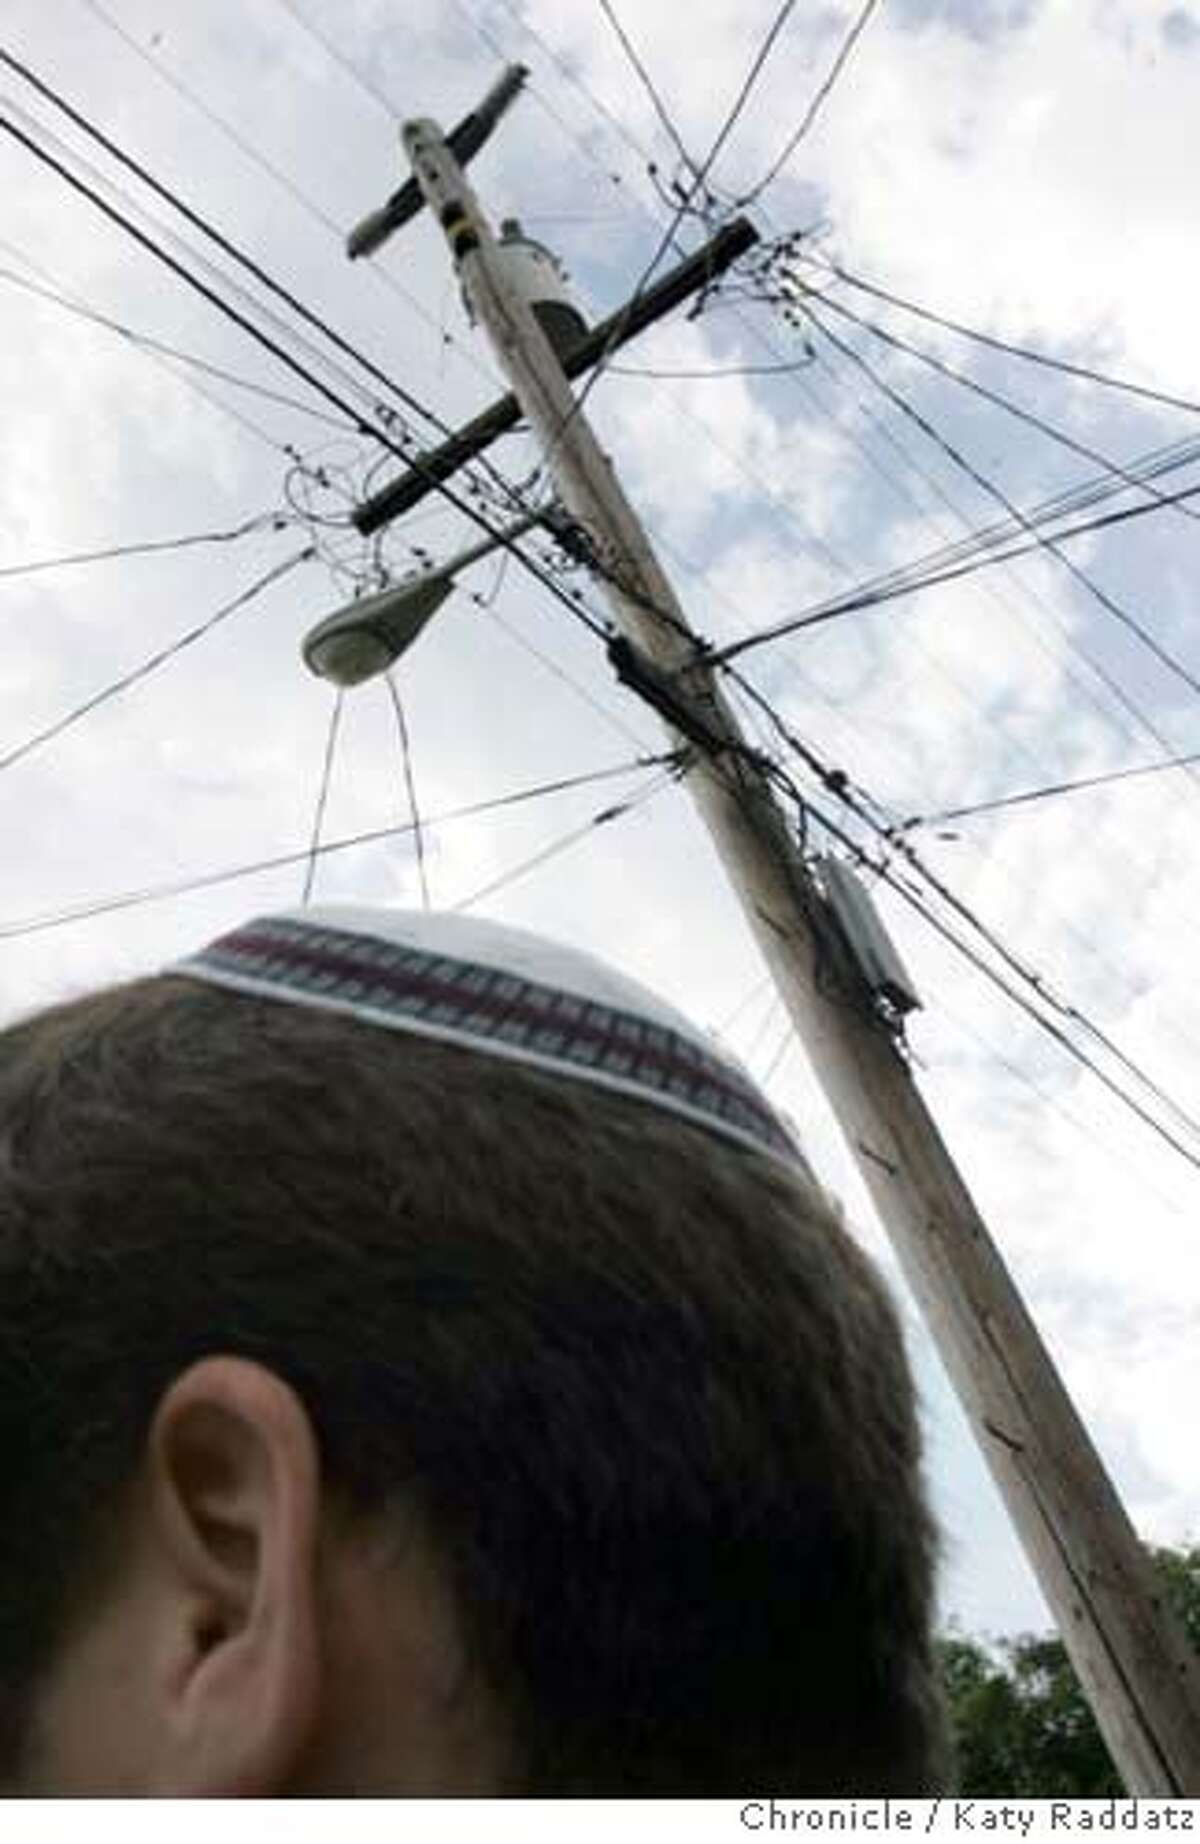 ERUV_113_RAD.jpg SHOWN: A power pole on Cains St. in Berkeley which forms part of the symbolic boundary called an eruv. Rabbi Yair Silverman, the rabbi of Congregation Beth Israel in Berkeley, whose head is seen here, had the idea to create the eruv from power poles and BART tracks an other existing structures. Story is about how orthodox Jews in Berkeley created an eruv, which is a symbolic boundary around their community that liberates them from prohibitions against